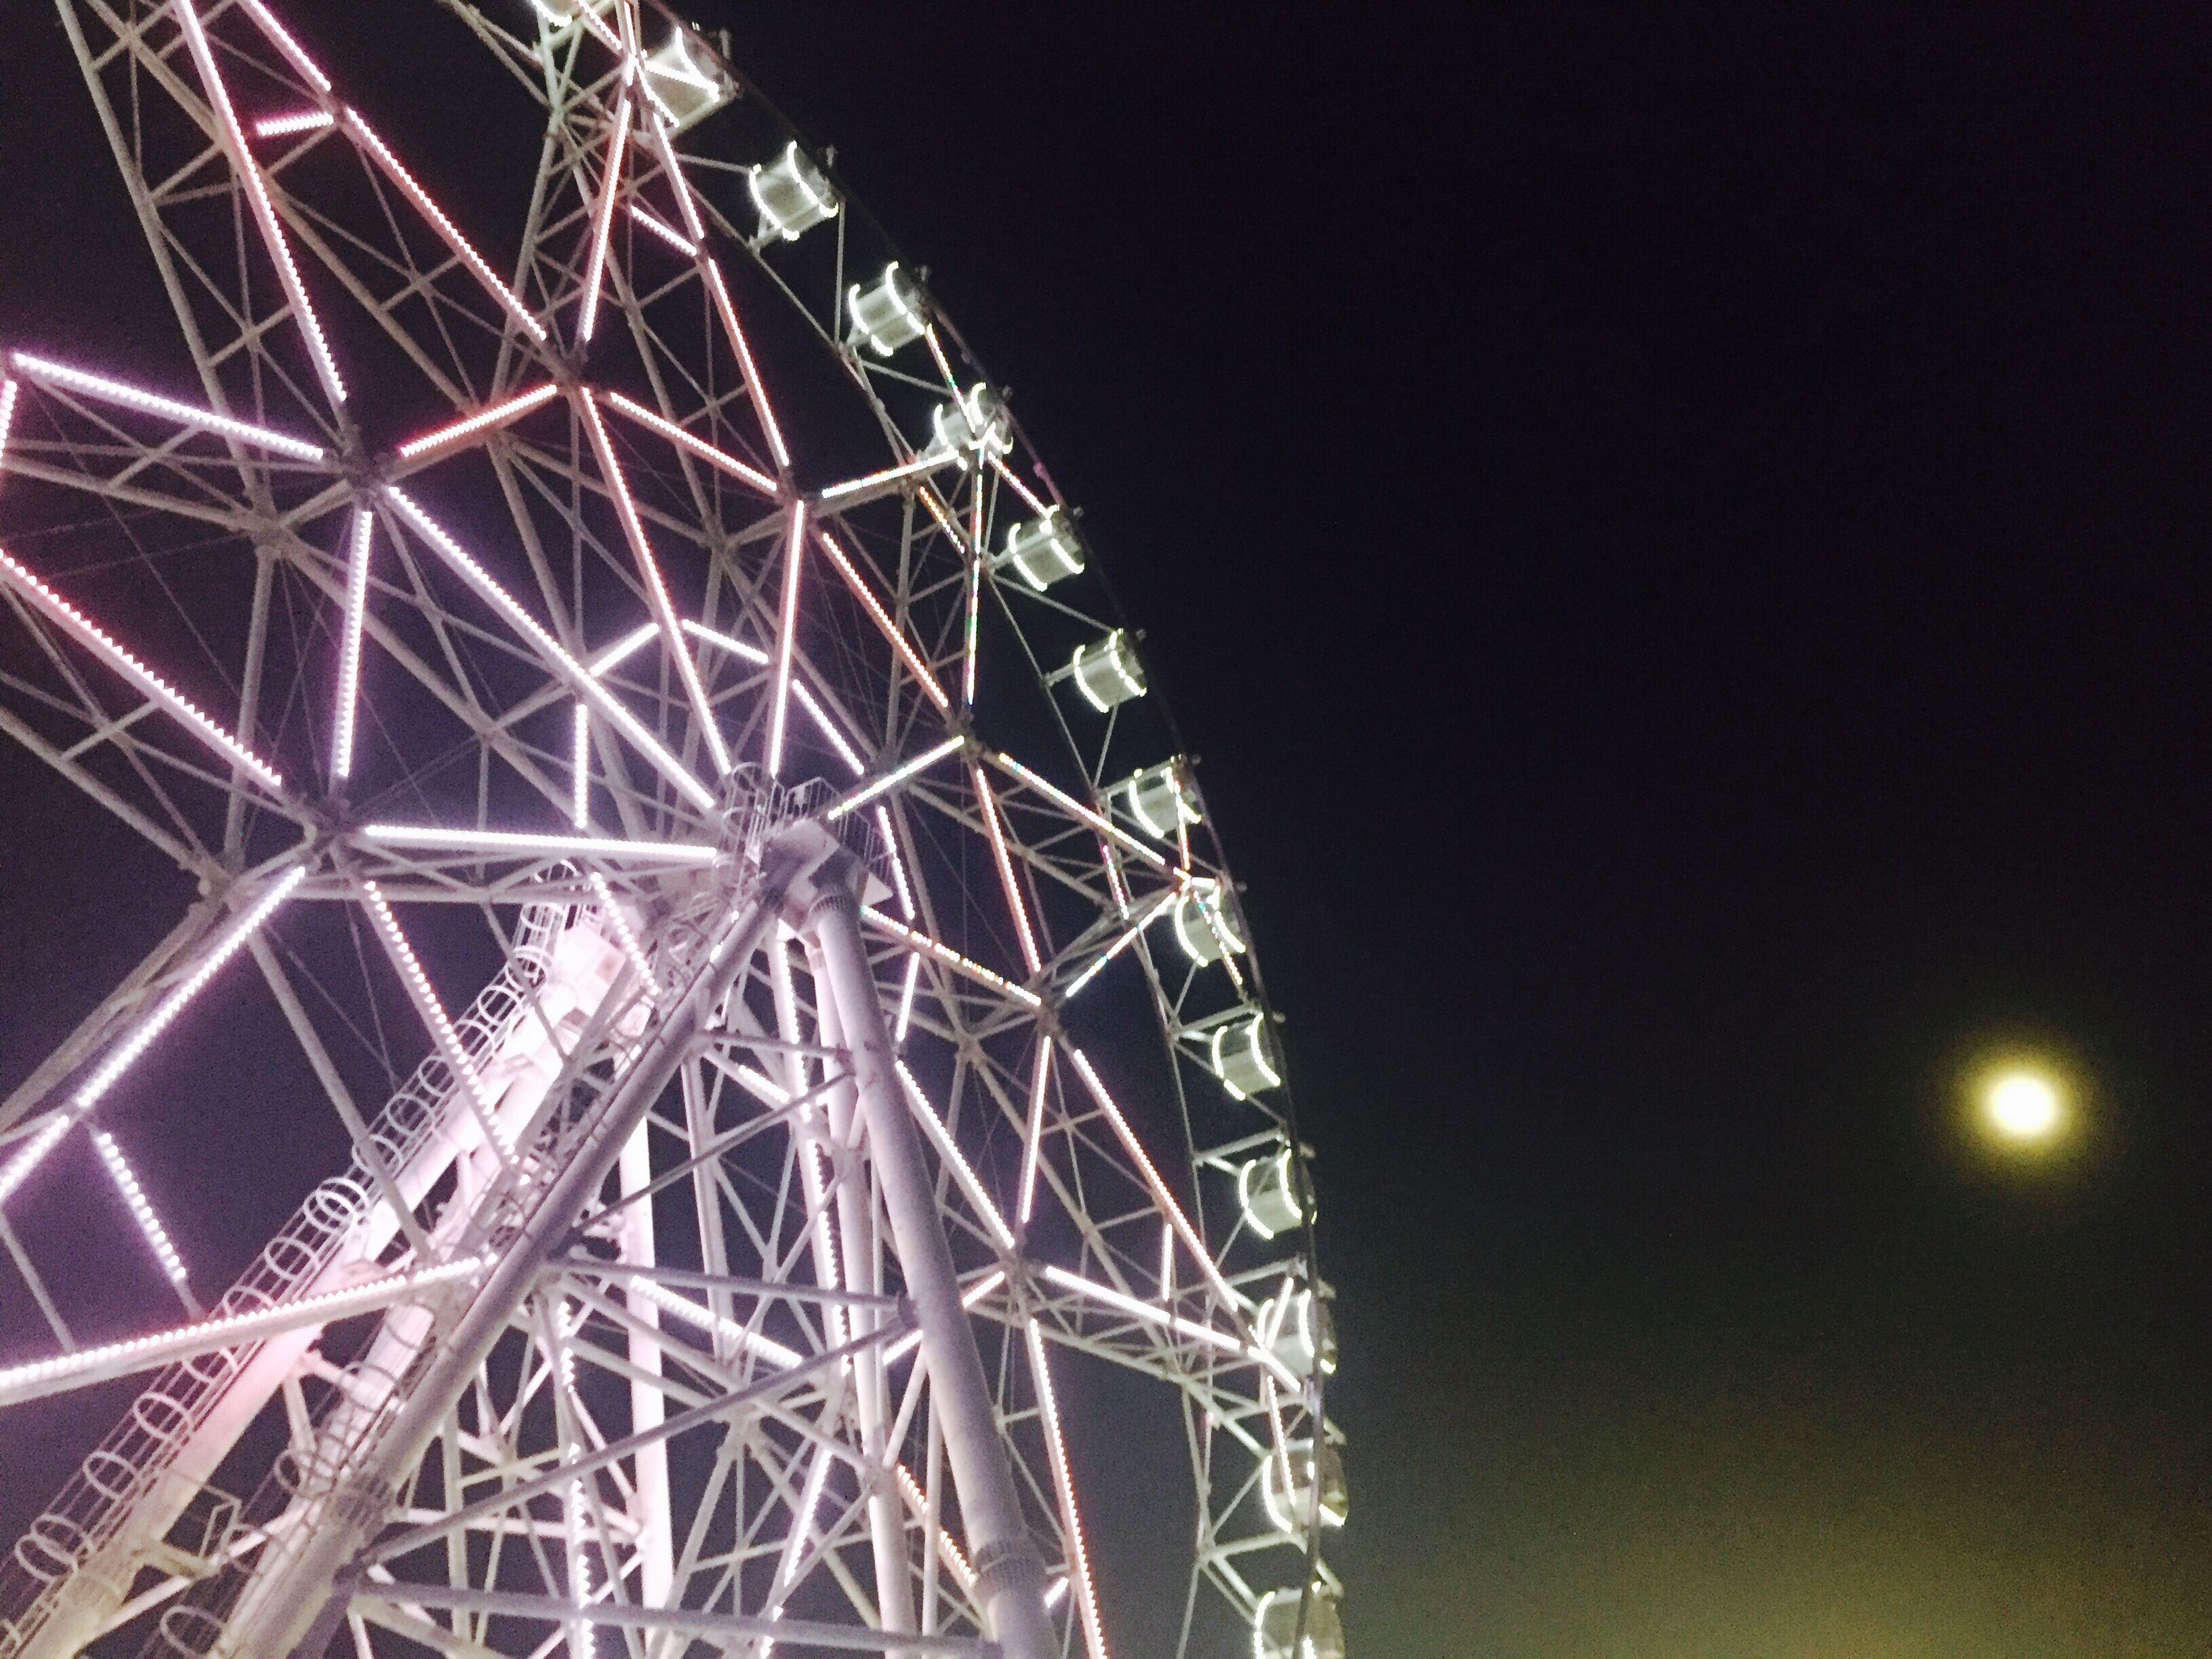 night, low angle view, illuminated, sky, amusement park ride, arts culture and entertainment, outdoors, no people, tall - high, glowing, dark